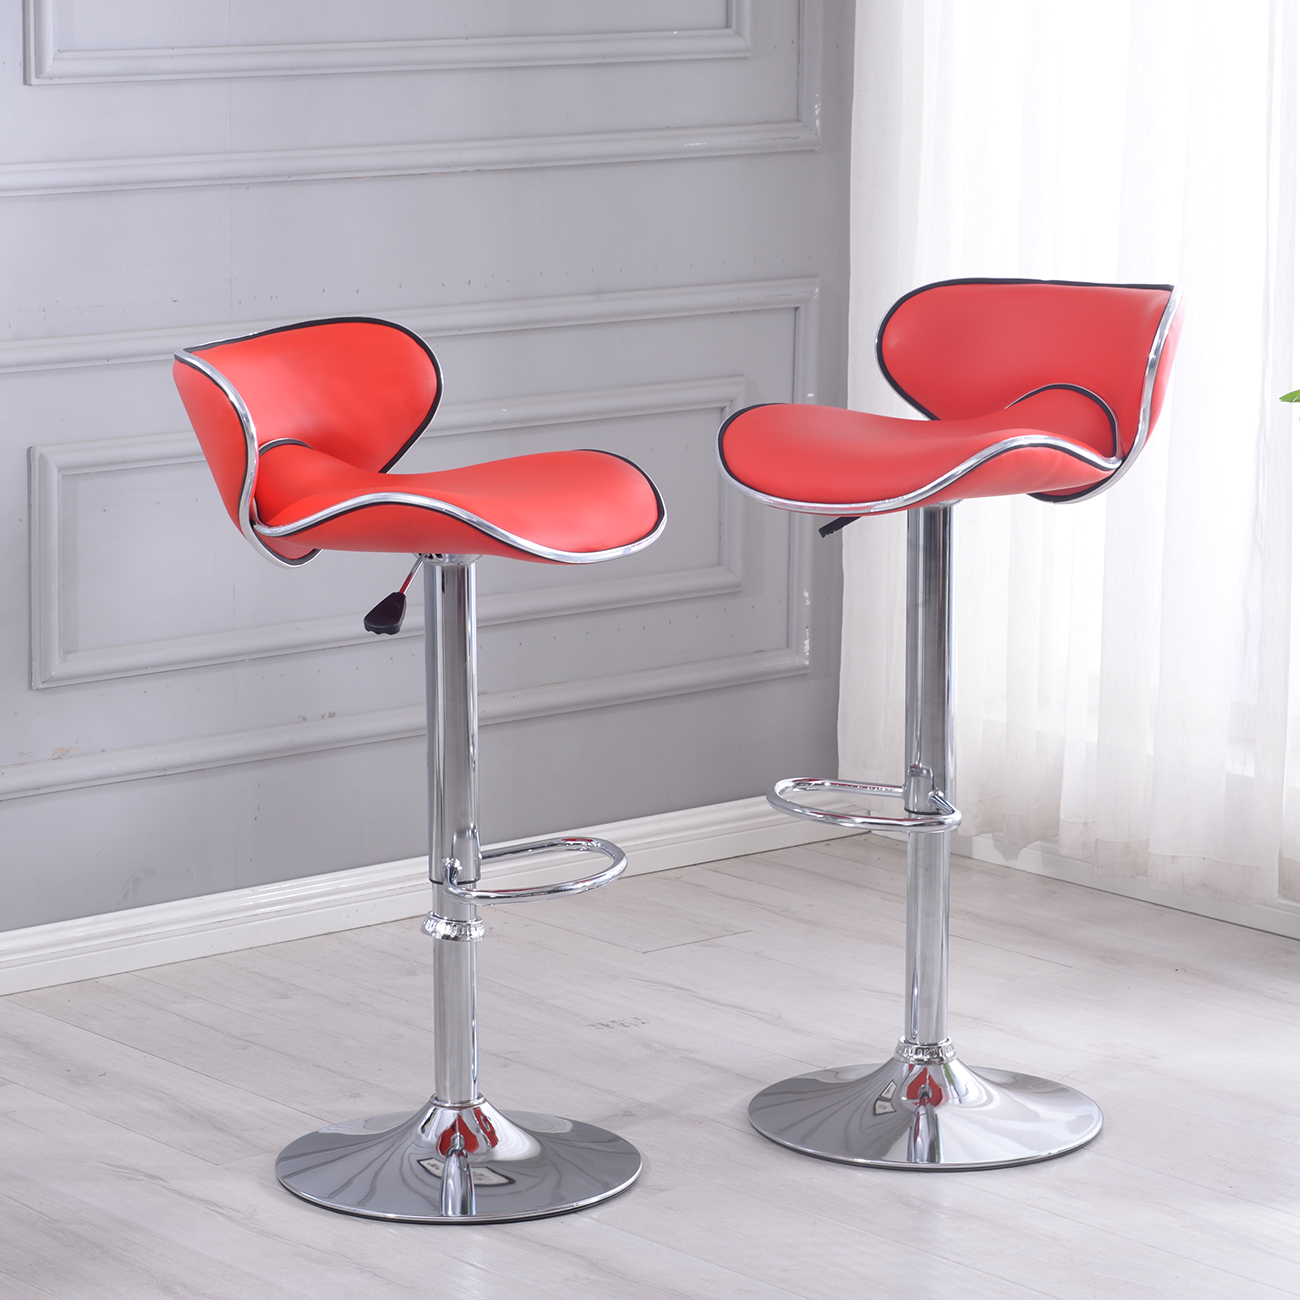 new set of 2 bar stools leather hydraulic swivel dinning chair barstools pub ebay. Black Bedroom Furniture Sets. Home Design Ideas